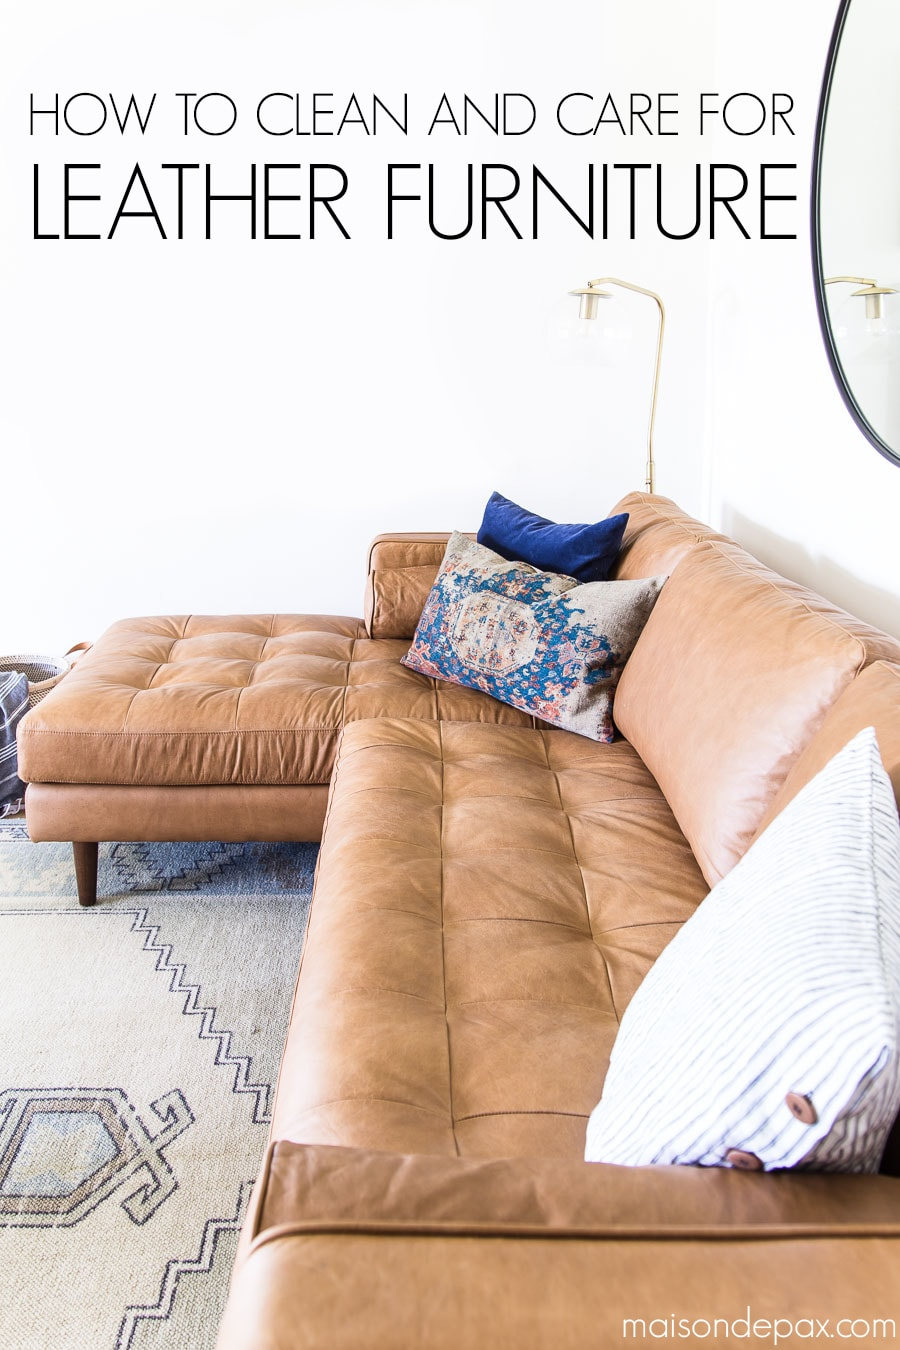 "tan leather sofa with text ""how to clean and care for leather furniture"" 